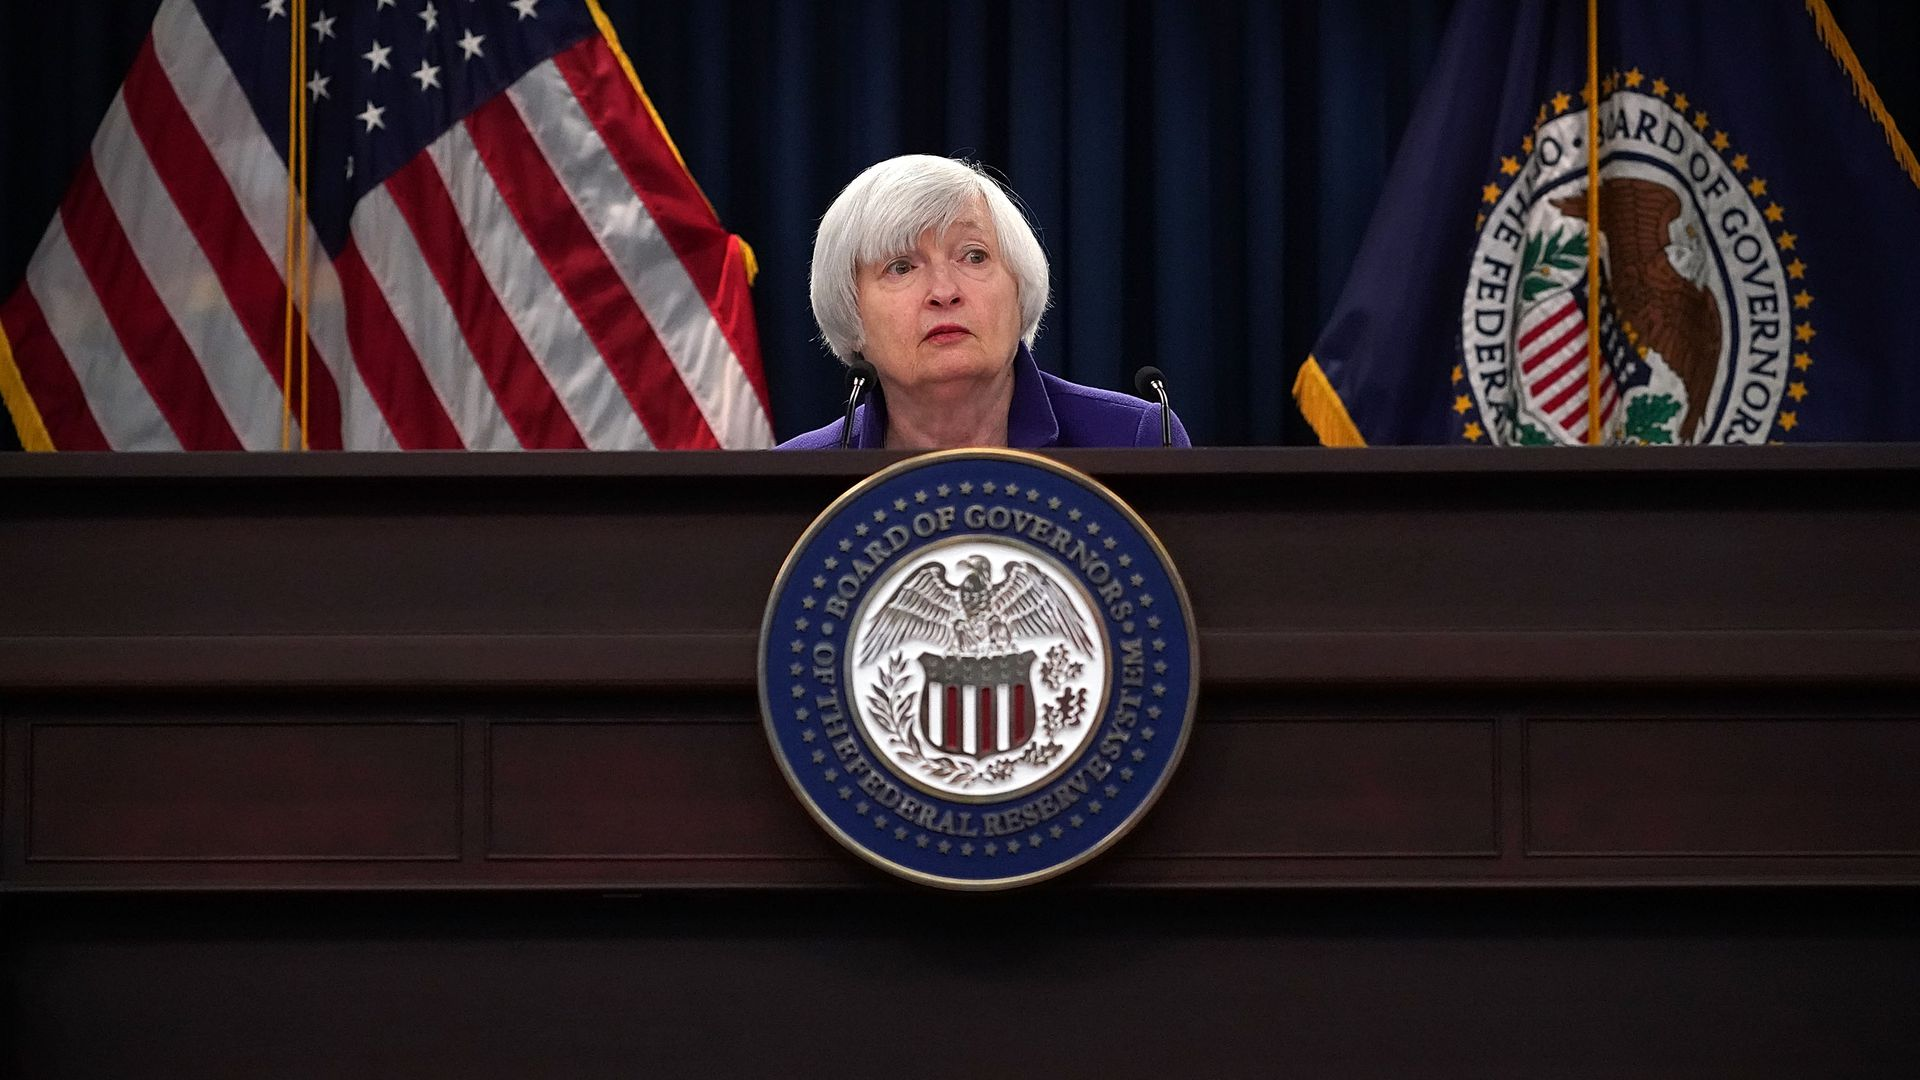 Federal Reserve Chair Janet Yellen speaks during her last news conference in office December 13, 2017 in Washington, DC.